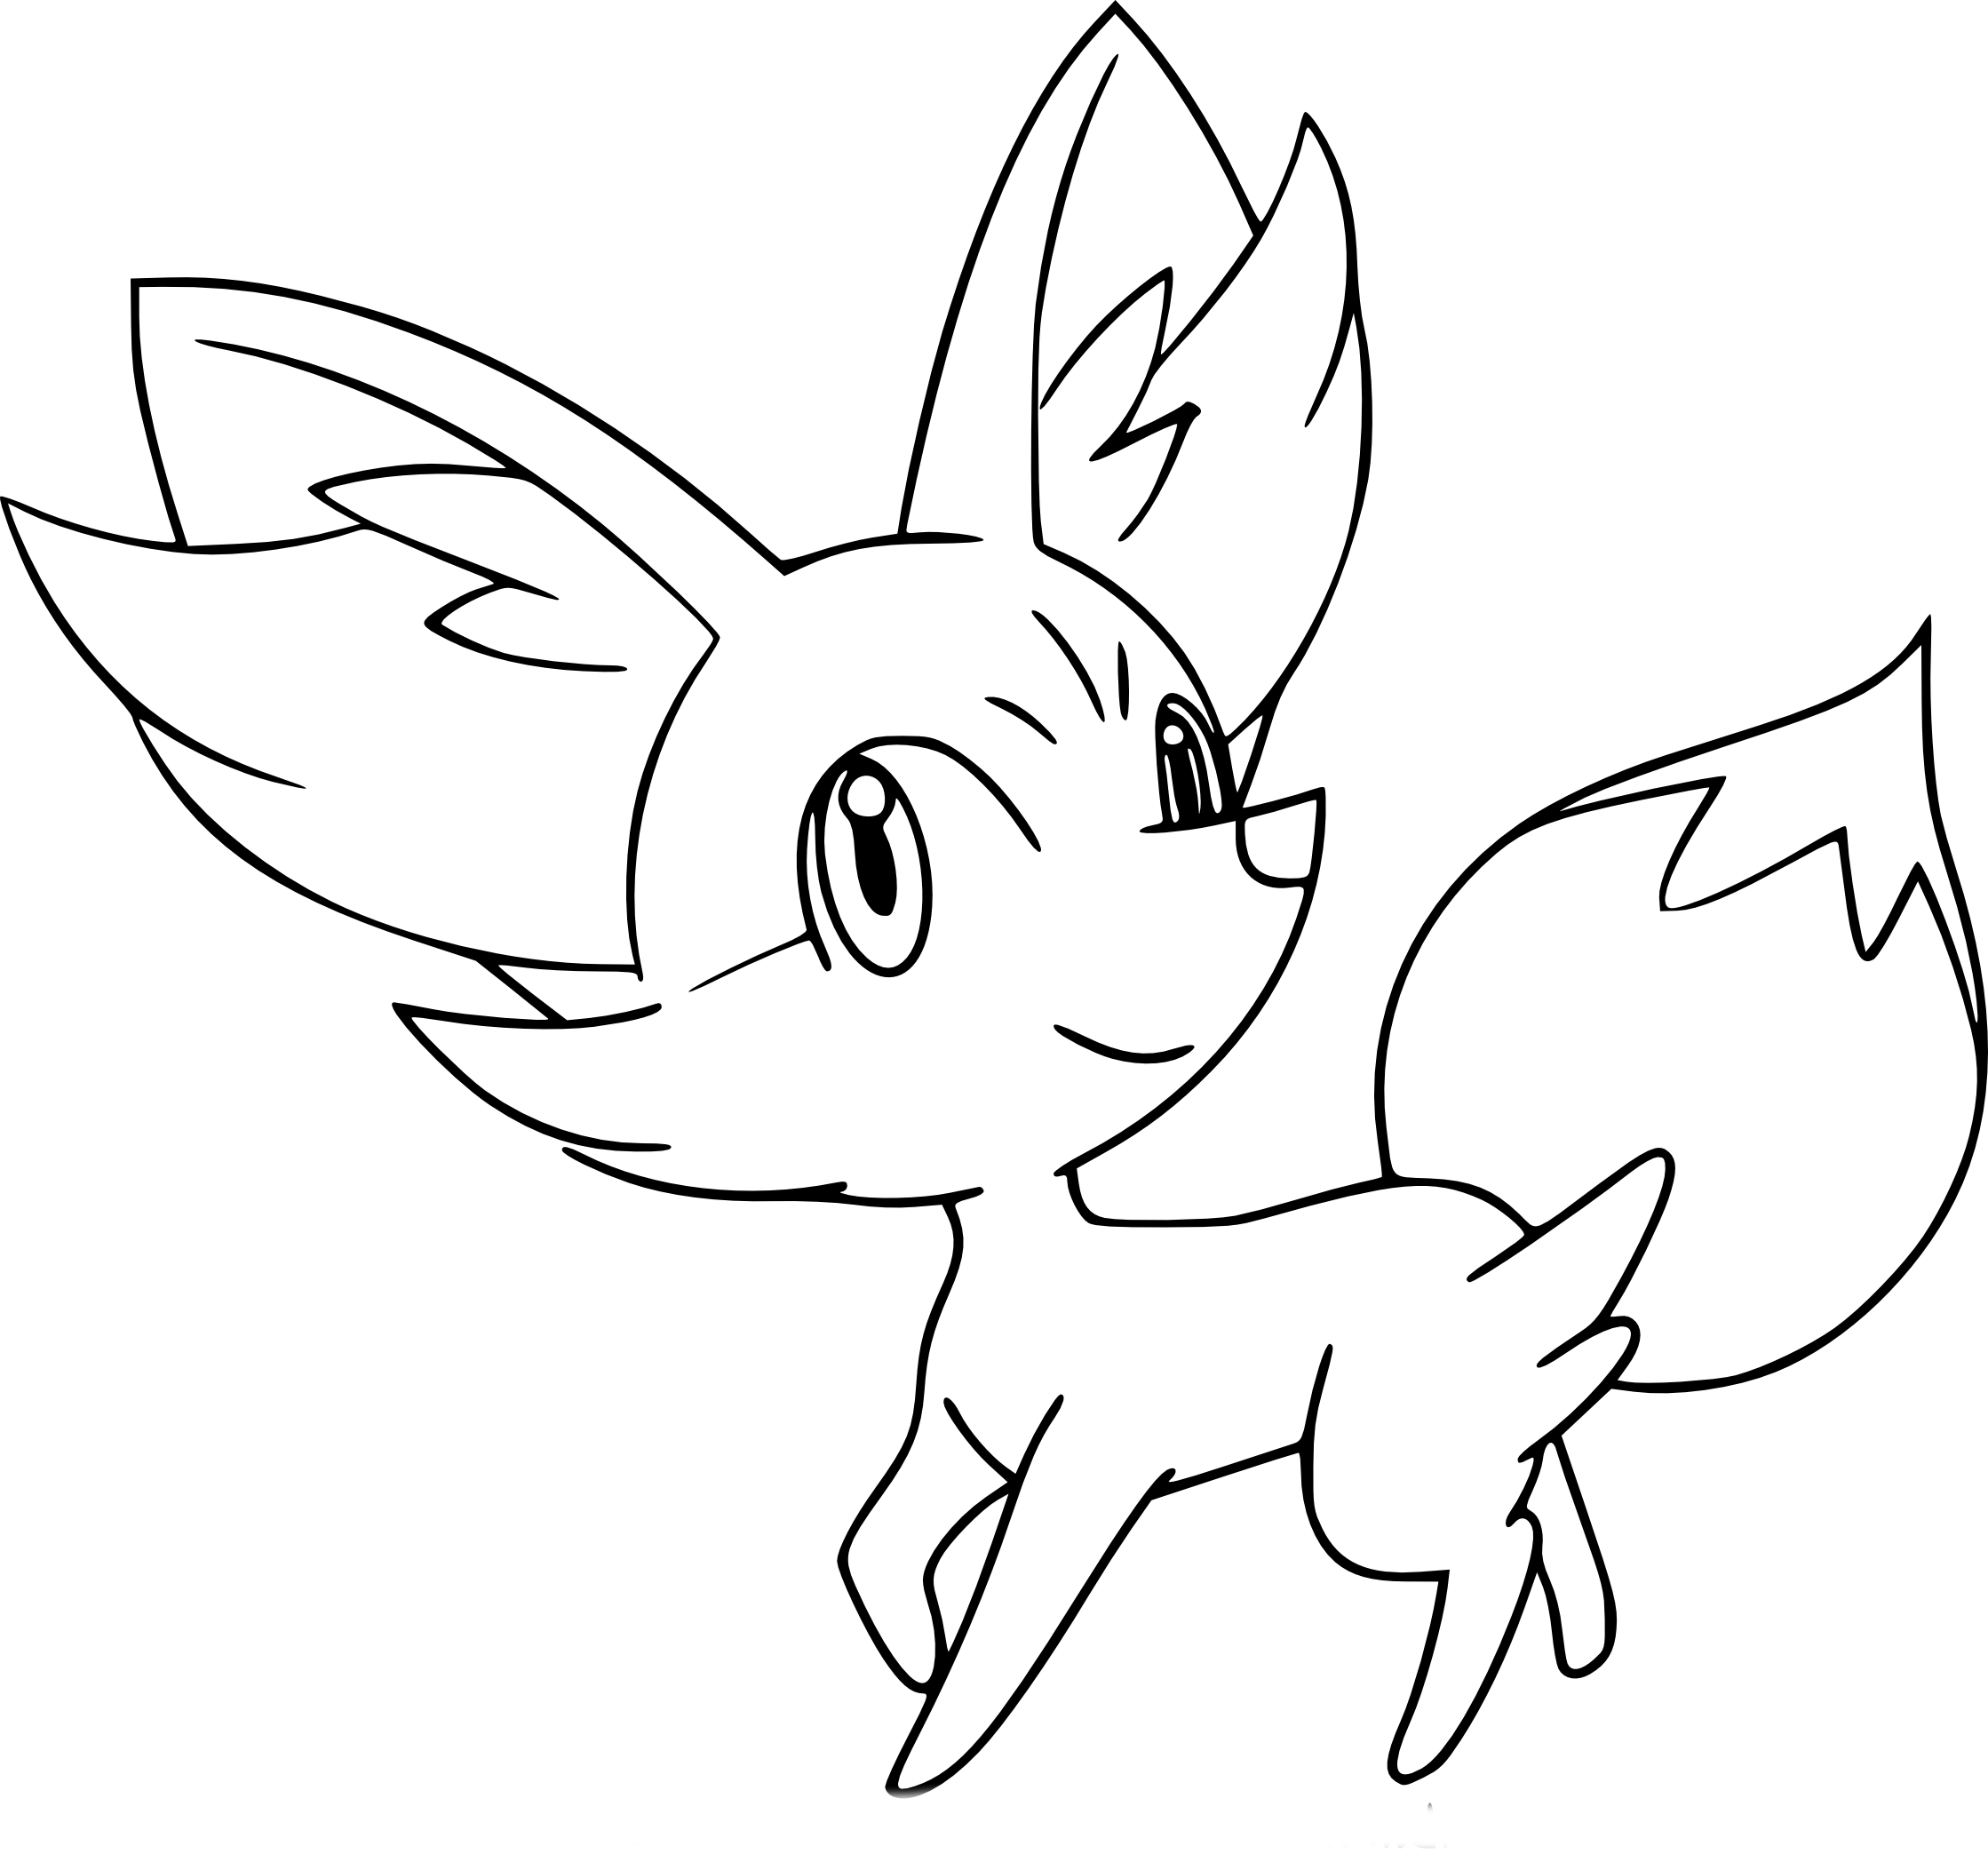 Pokemon fennekin coloring pages ~ Fennekin Evolution Coloring Pages Coloring Coloring Pages